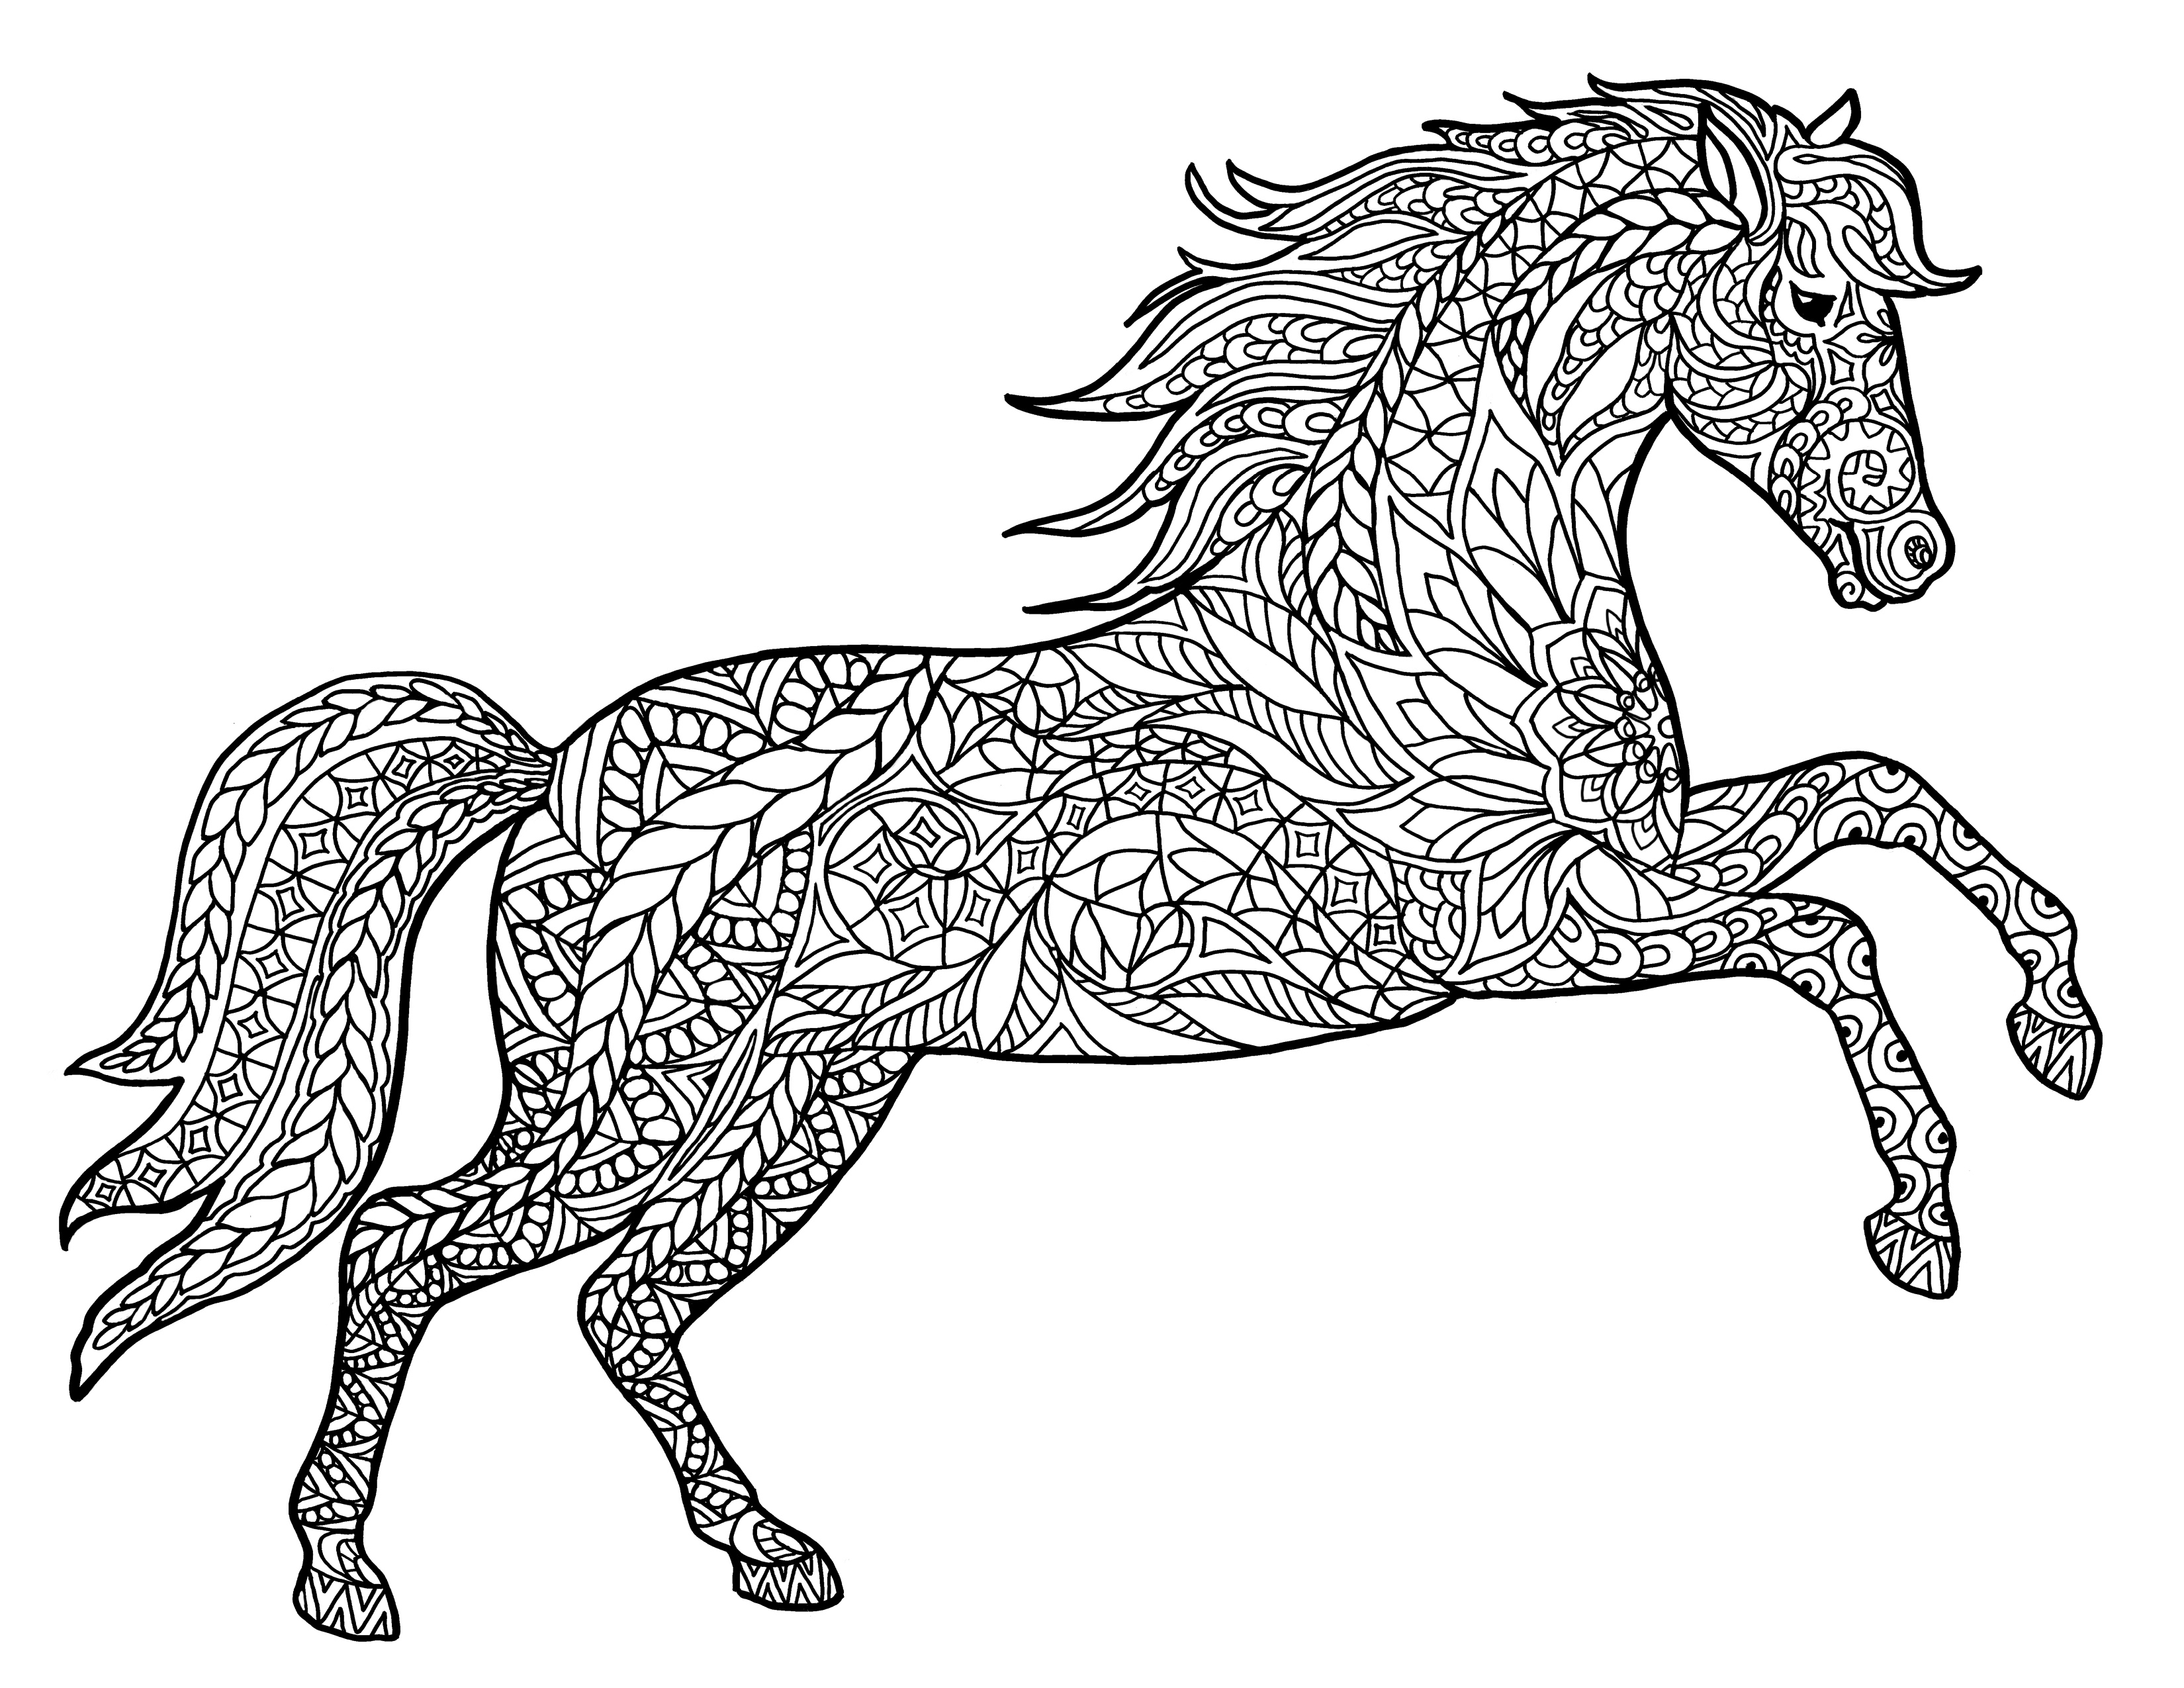 coloring animal for kids zoo animals coloring pages best coloring pages for kids kids coloring animal for